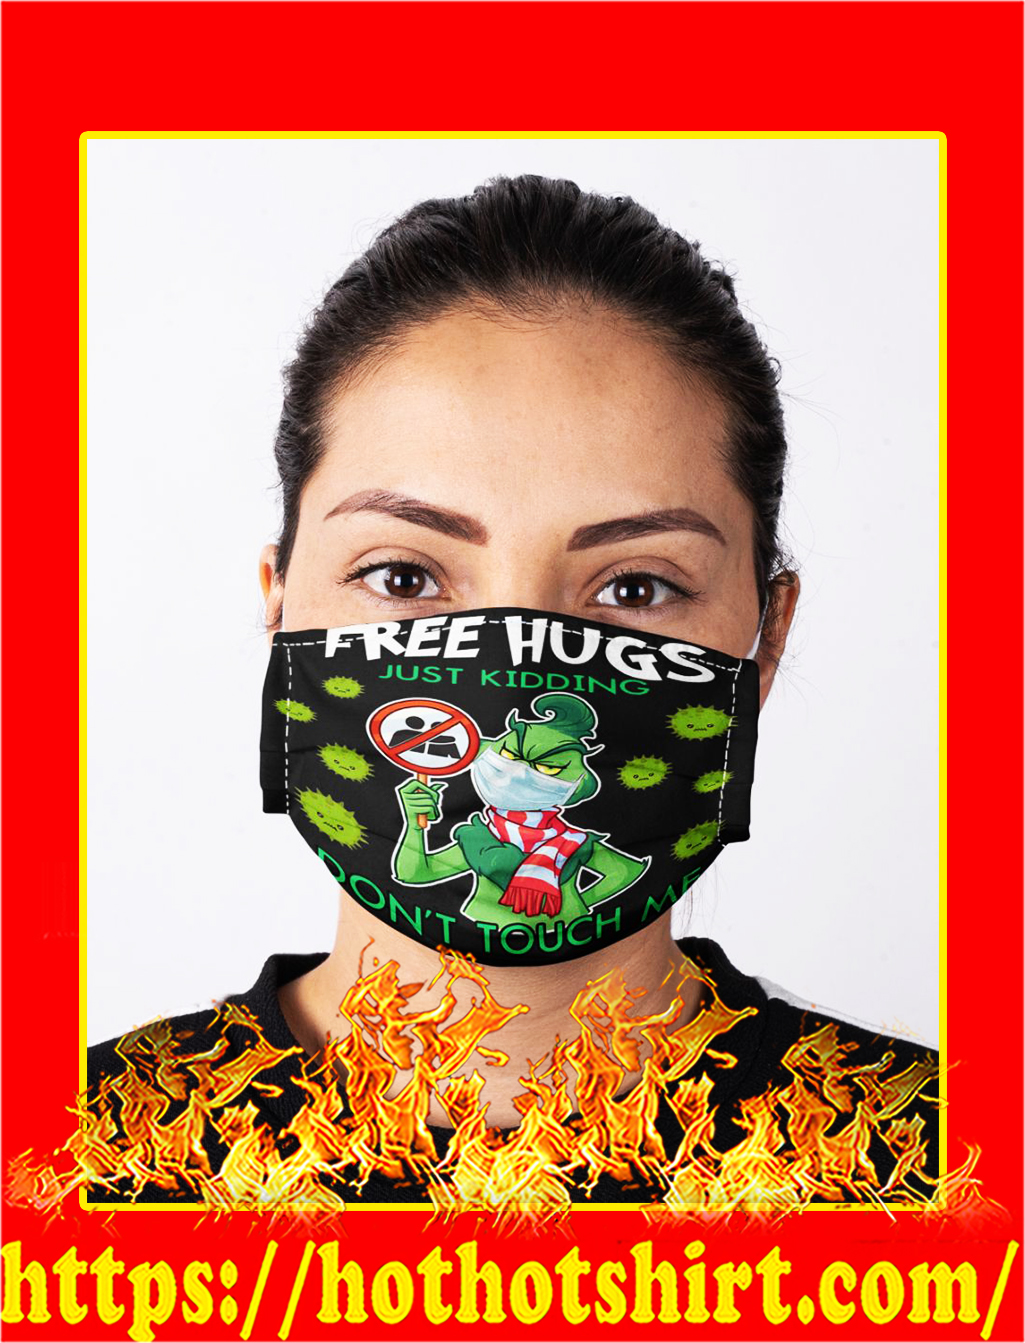 Grinch free hugs just kidding face mask- pic 1